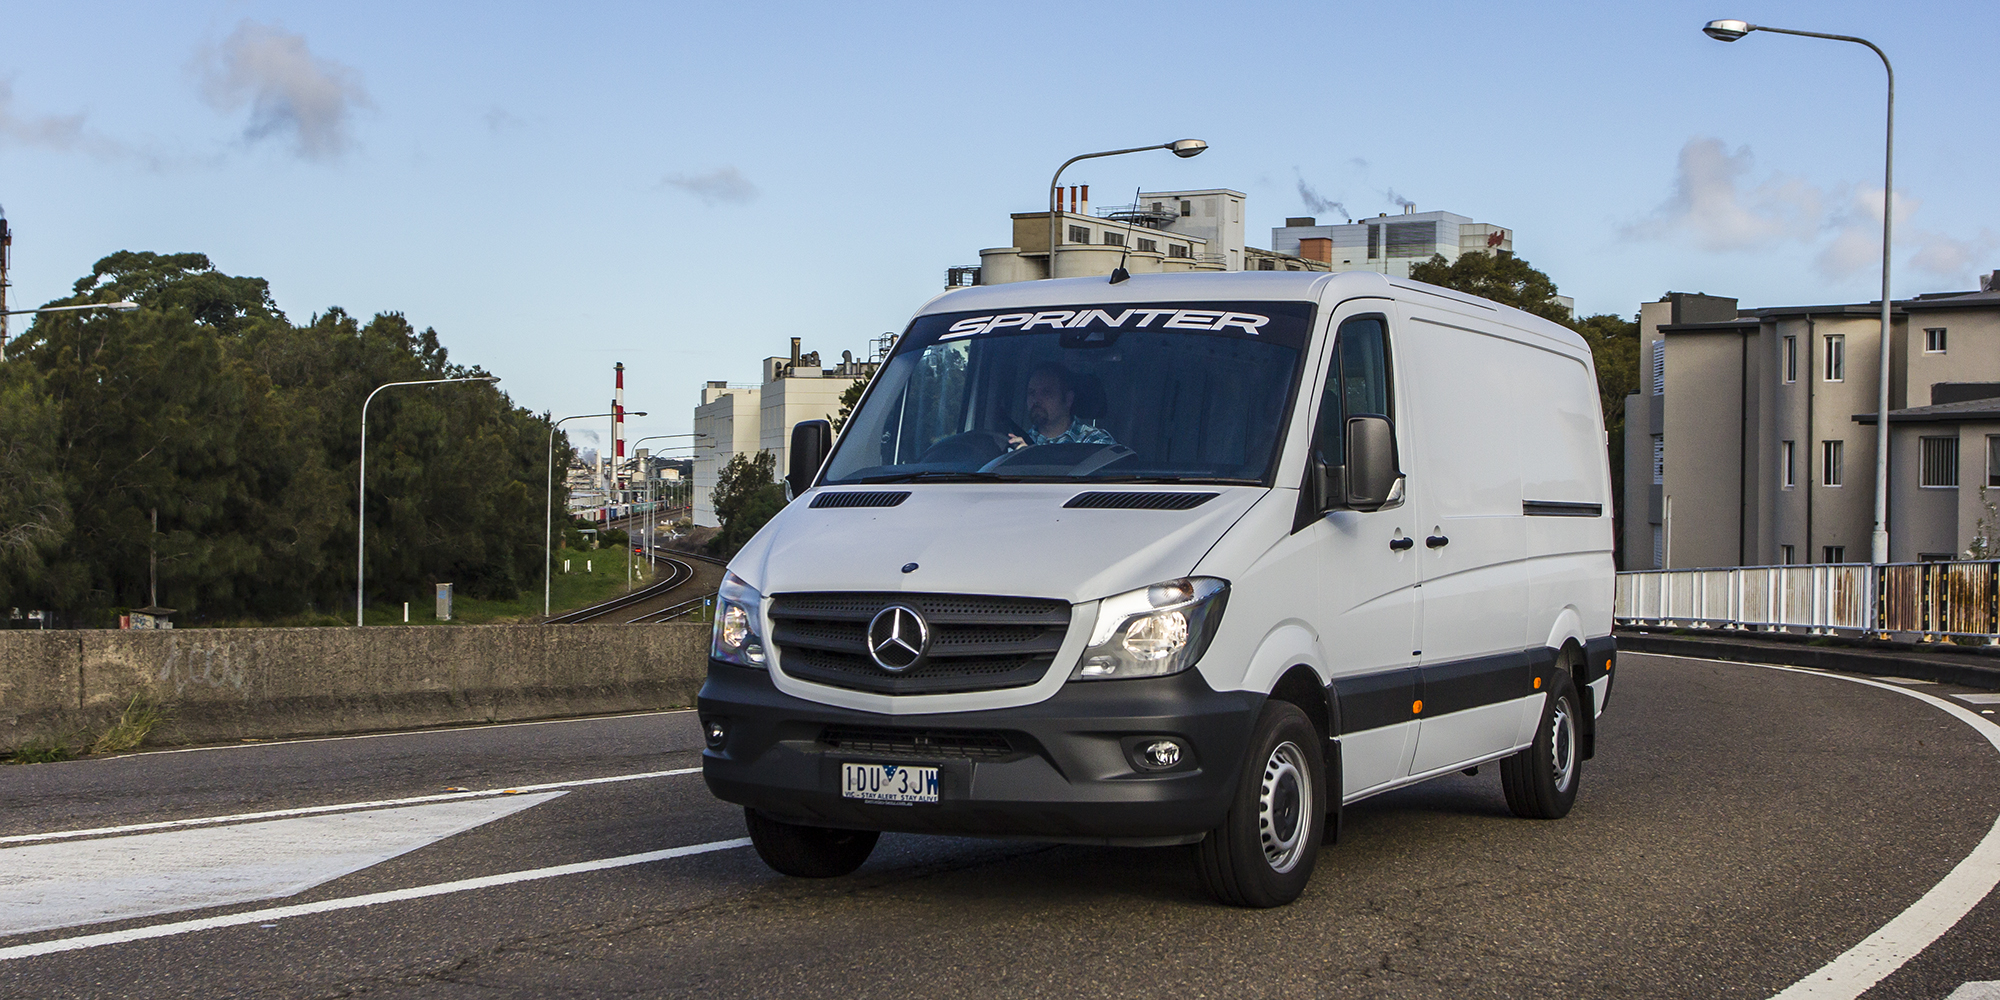 Fiat Ducato Review >> Large van comparison: Fiat Ducato v Ford Transit v Mercedes-Benz Sprinter v Renault Master - Photos